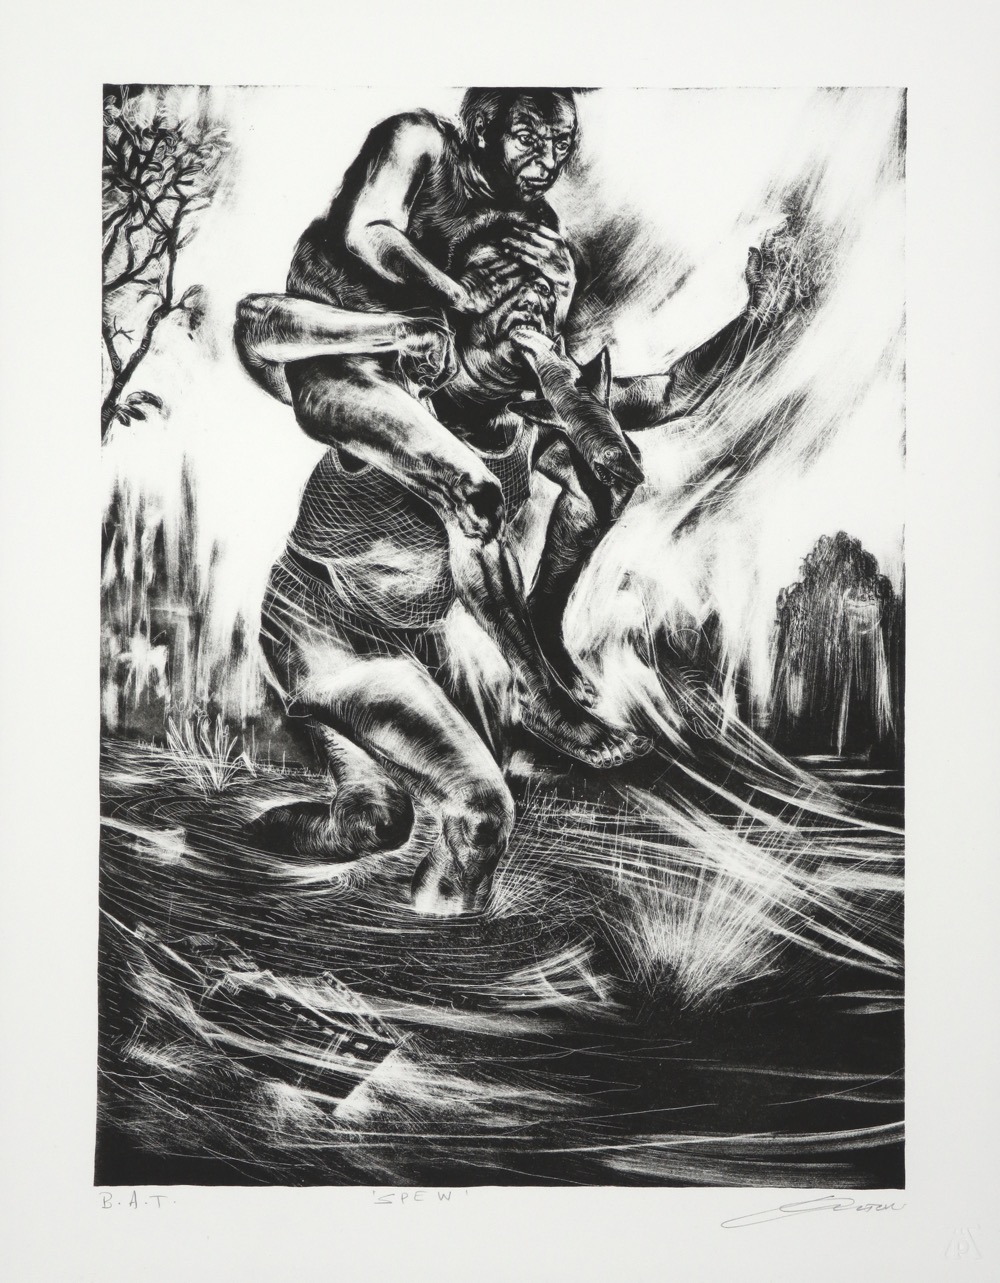 man with fish in mouth carrying a man on his shoulders across river